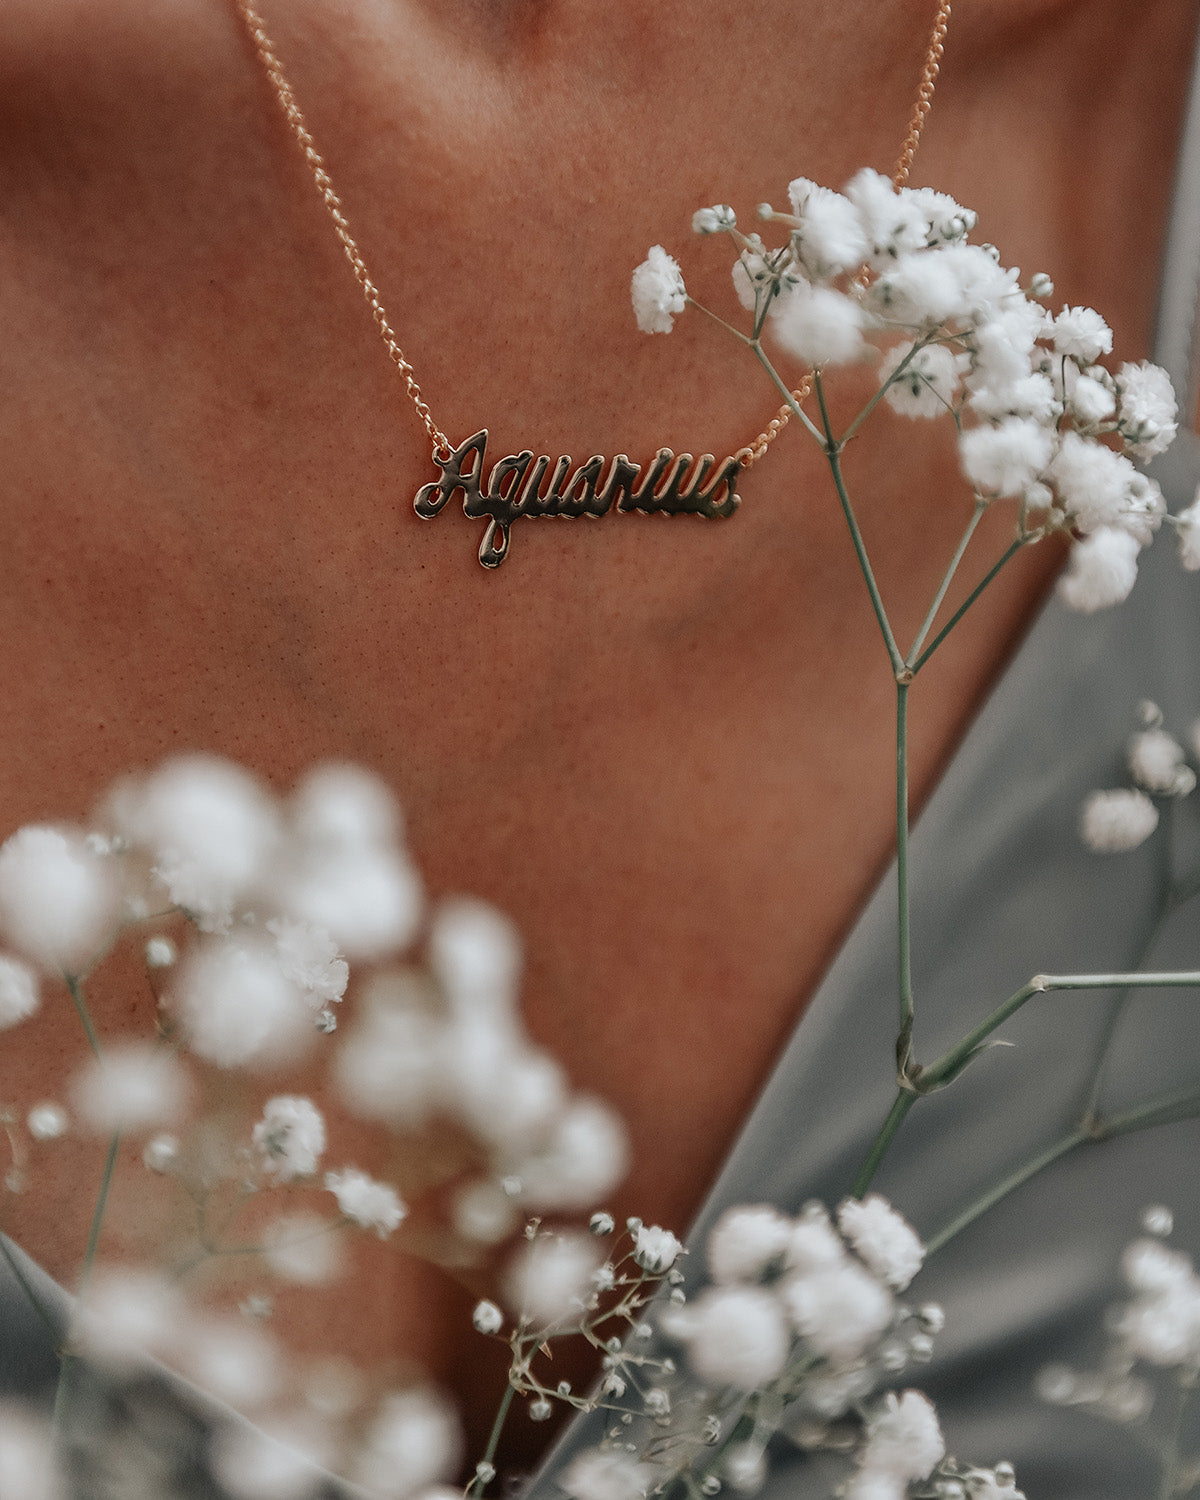 Aquarius Zodiac Nameplate Necklace